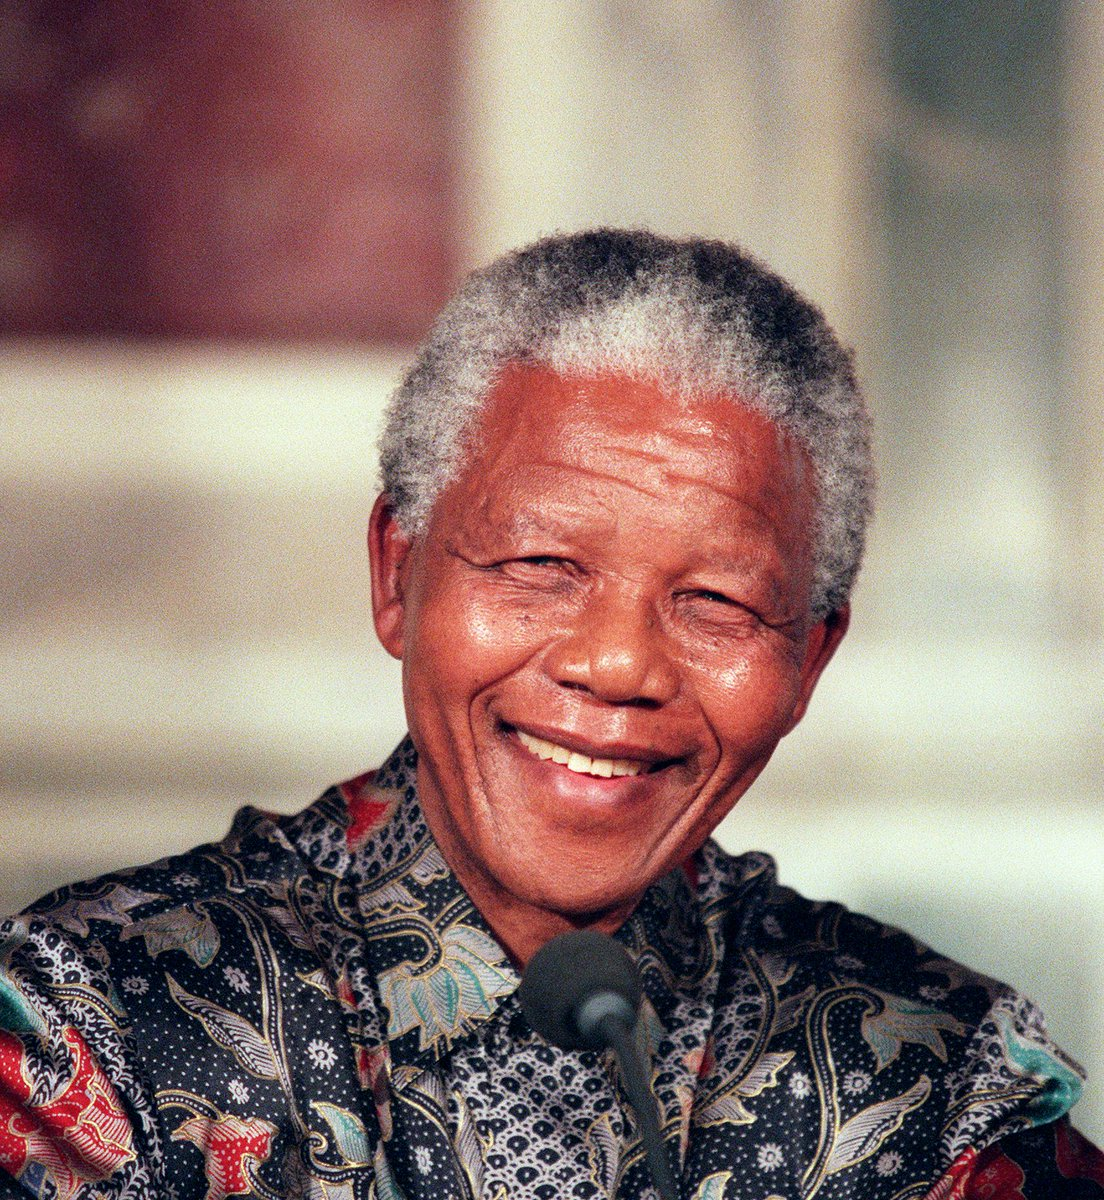 Today would have been Nelson Mandela's 100th birthday. #MandelaDay